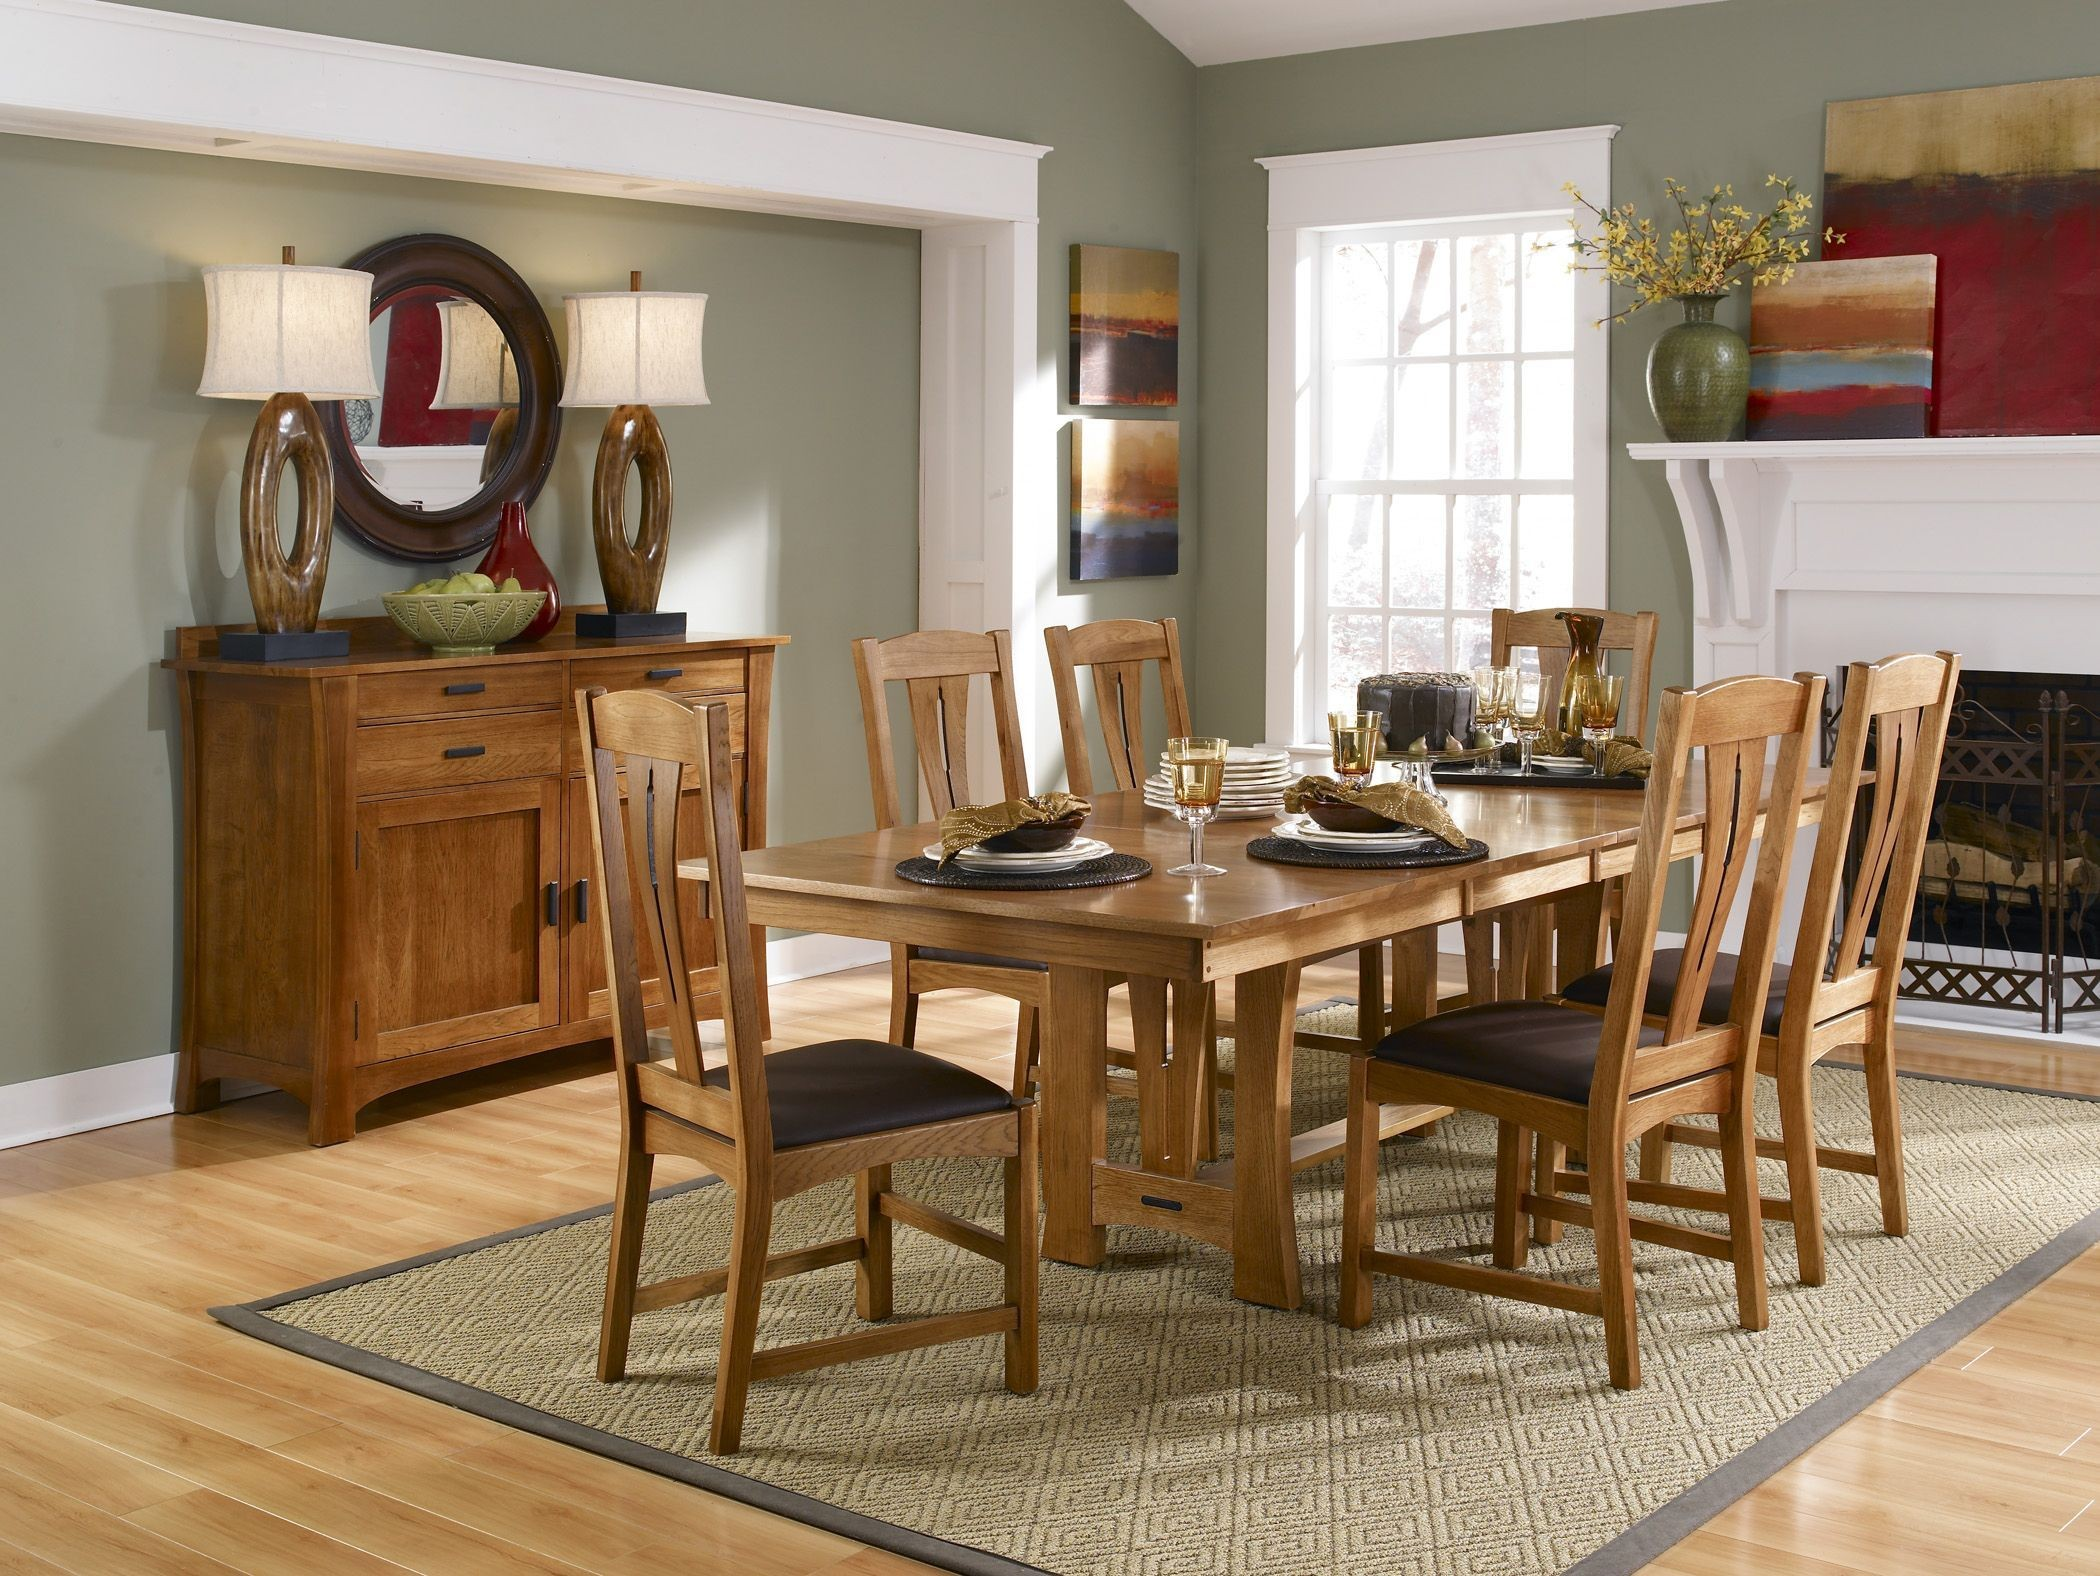 cattail bungalow 96 warm amber extendable trestle dining table from a america coleman furniture. Black Bedroom Furniture Sets. Home Design Ideas